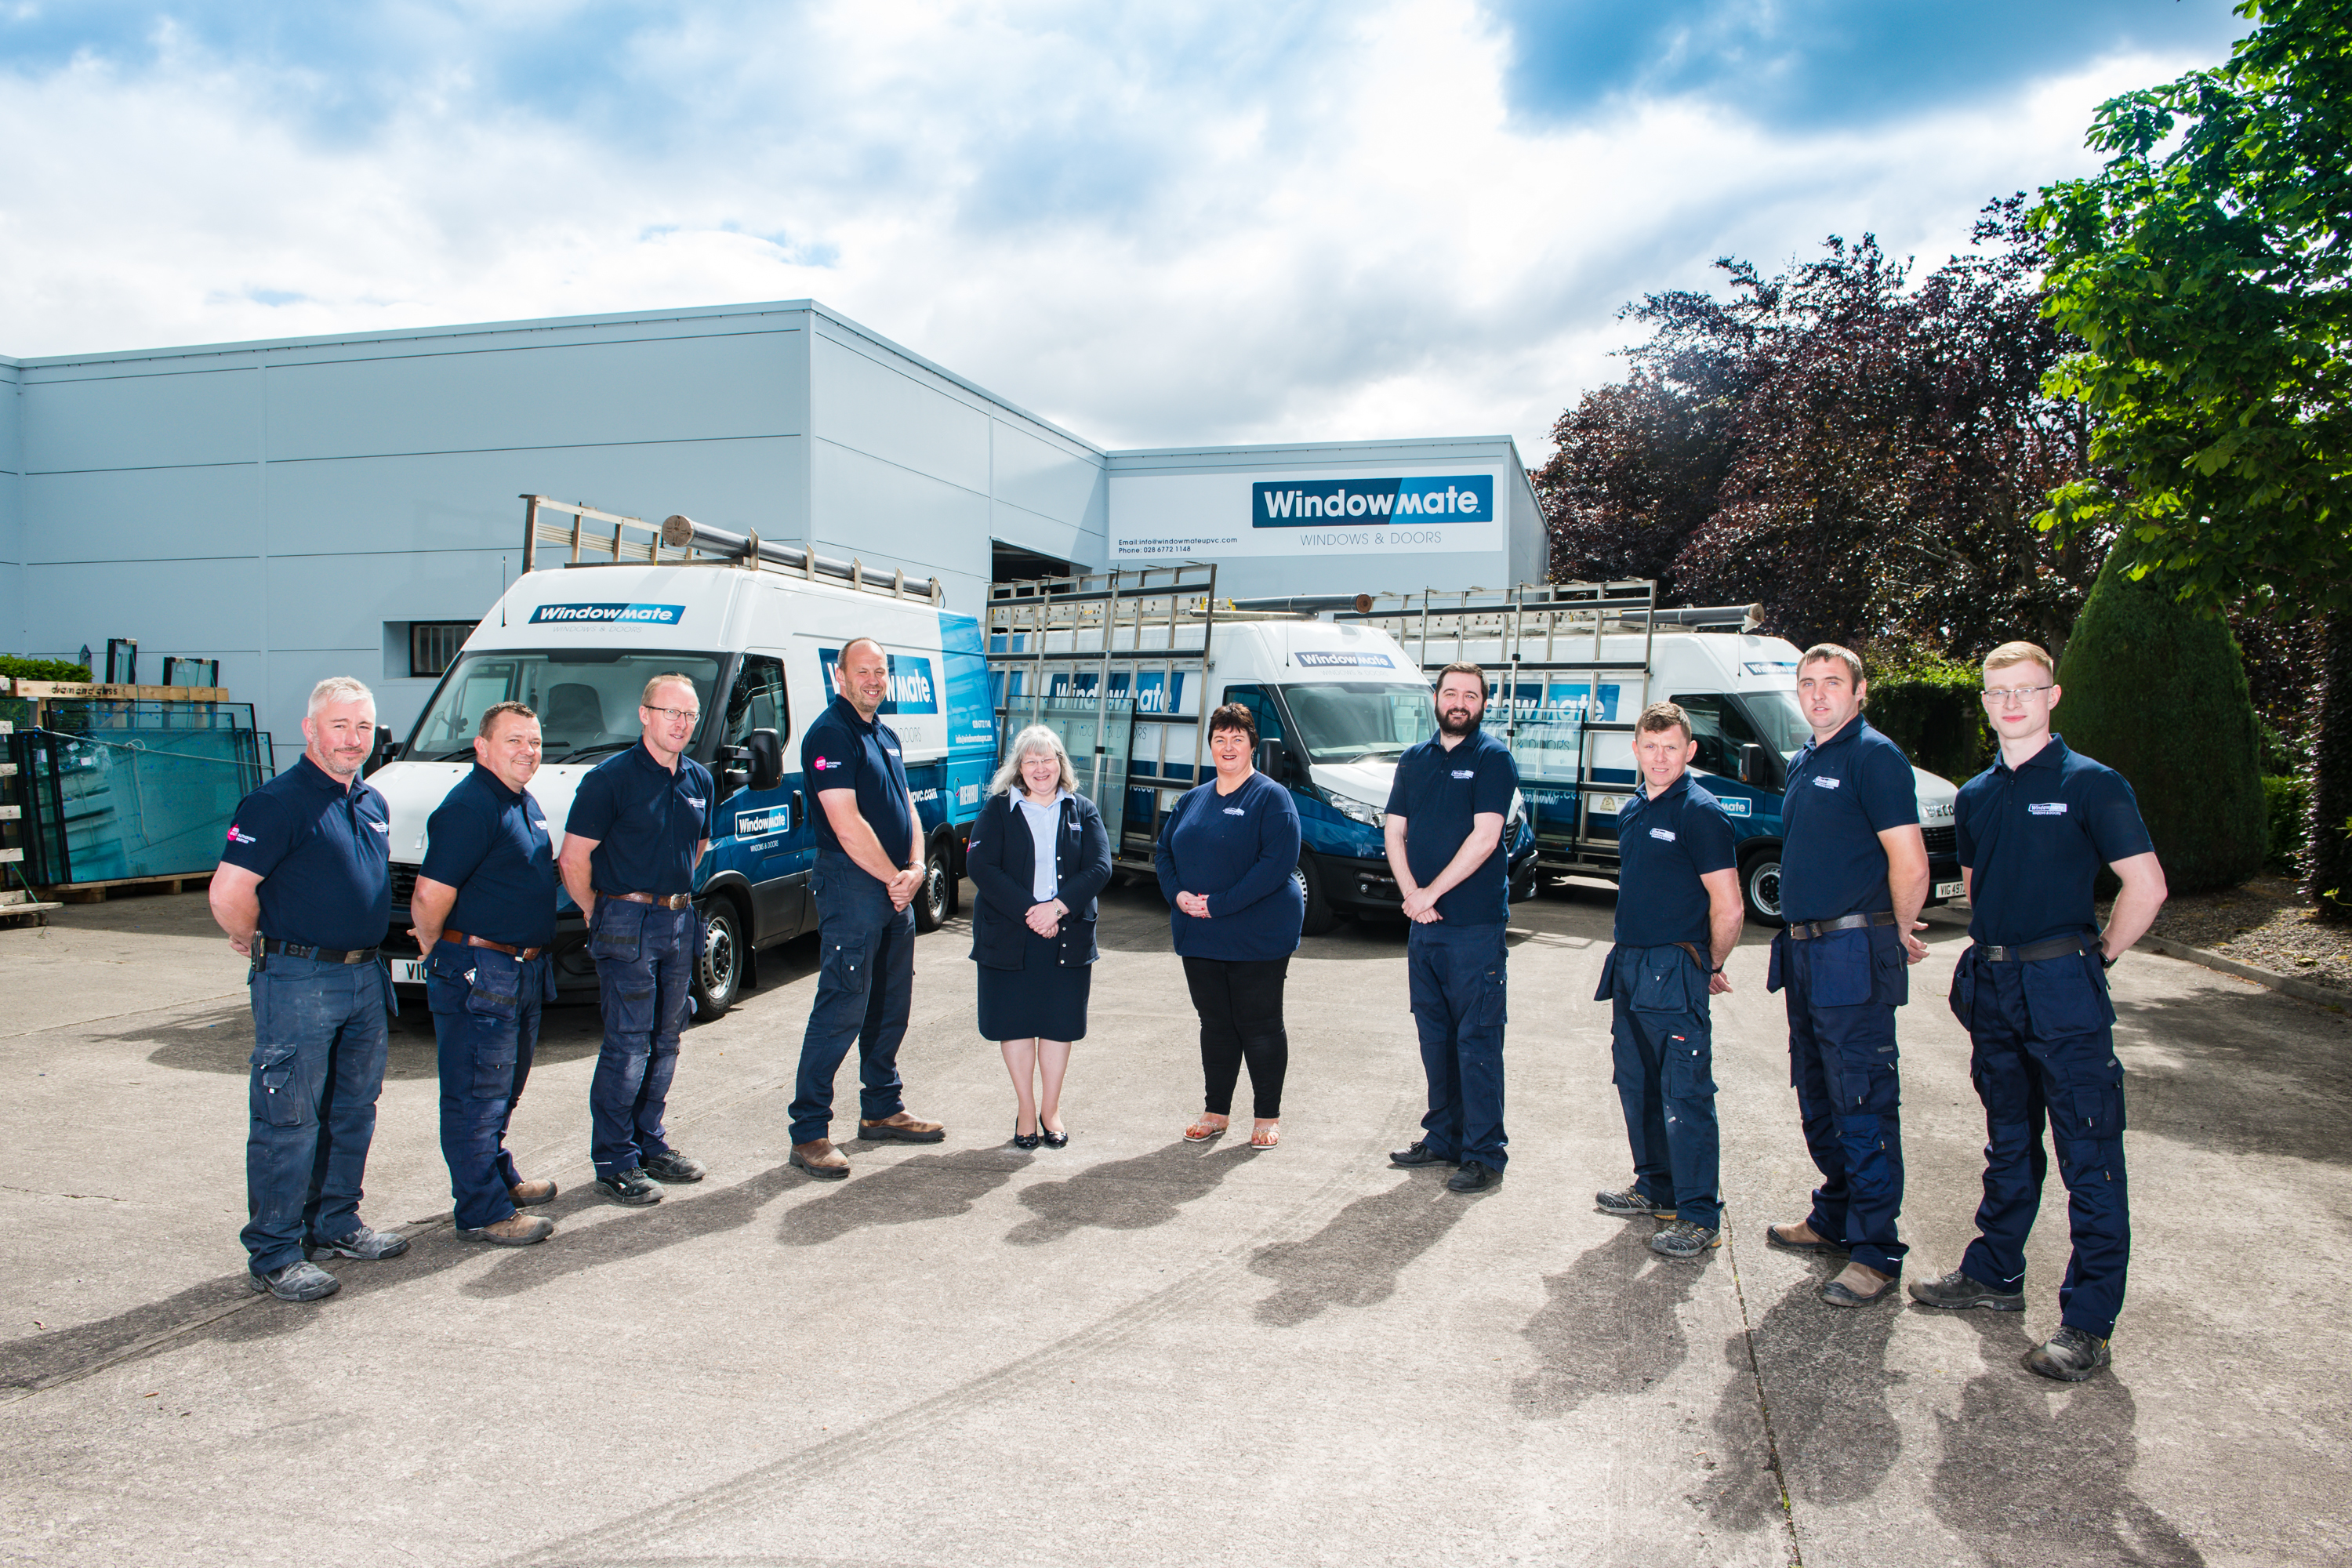 New Windowmate opens in Fermanagh